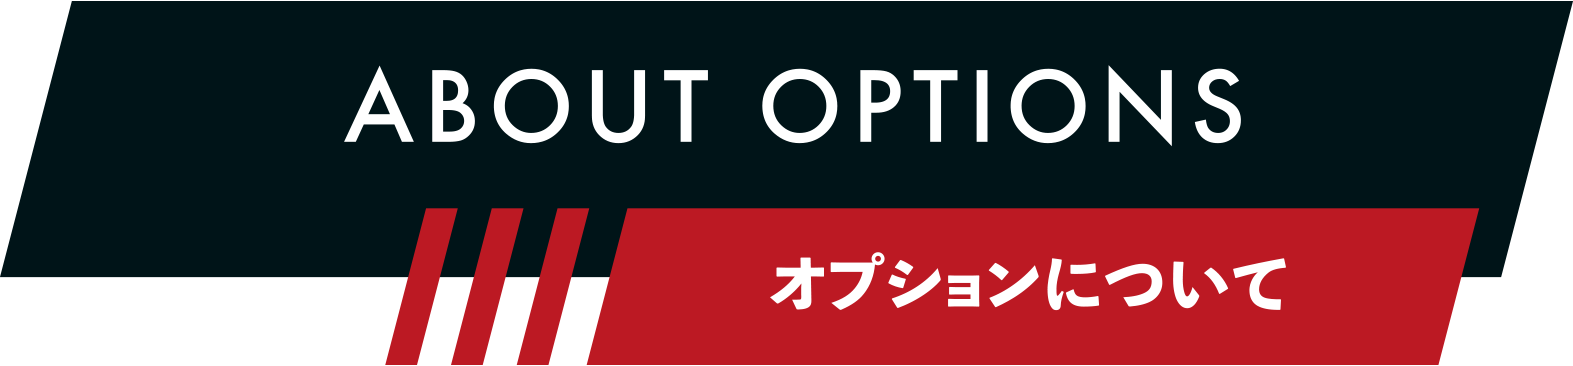 ABOUT OPTIONS オプションについて